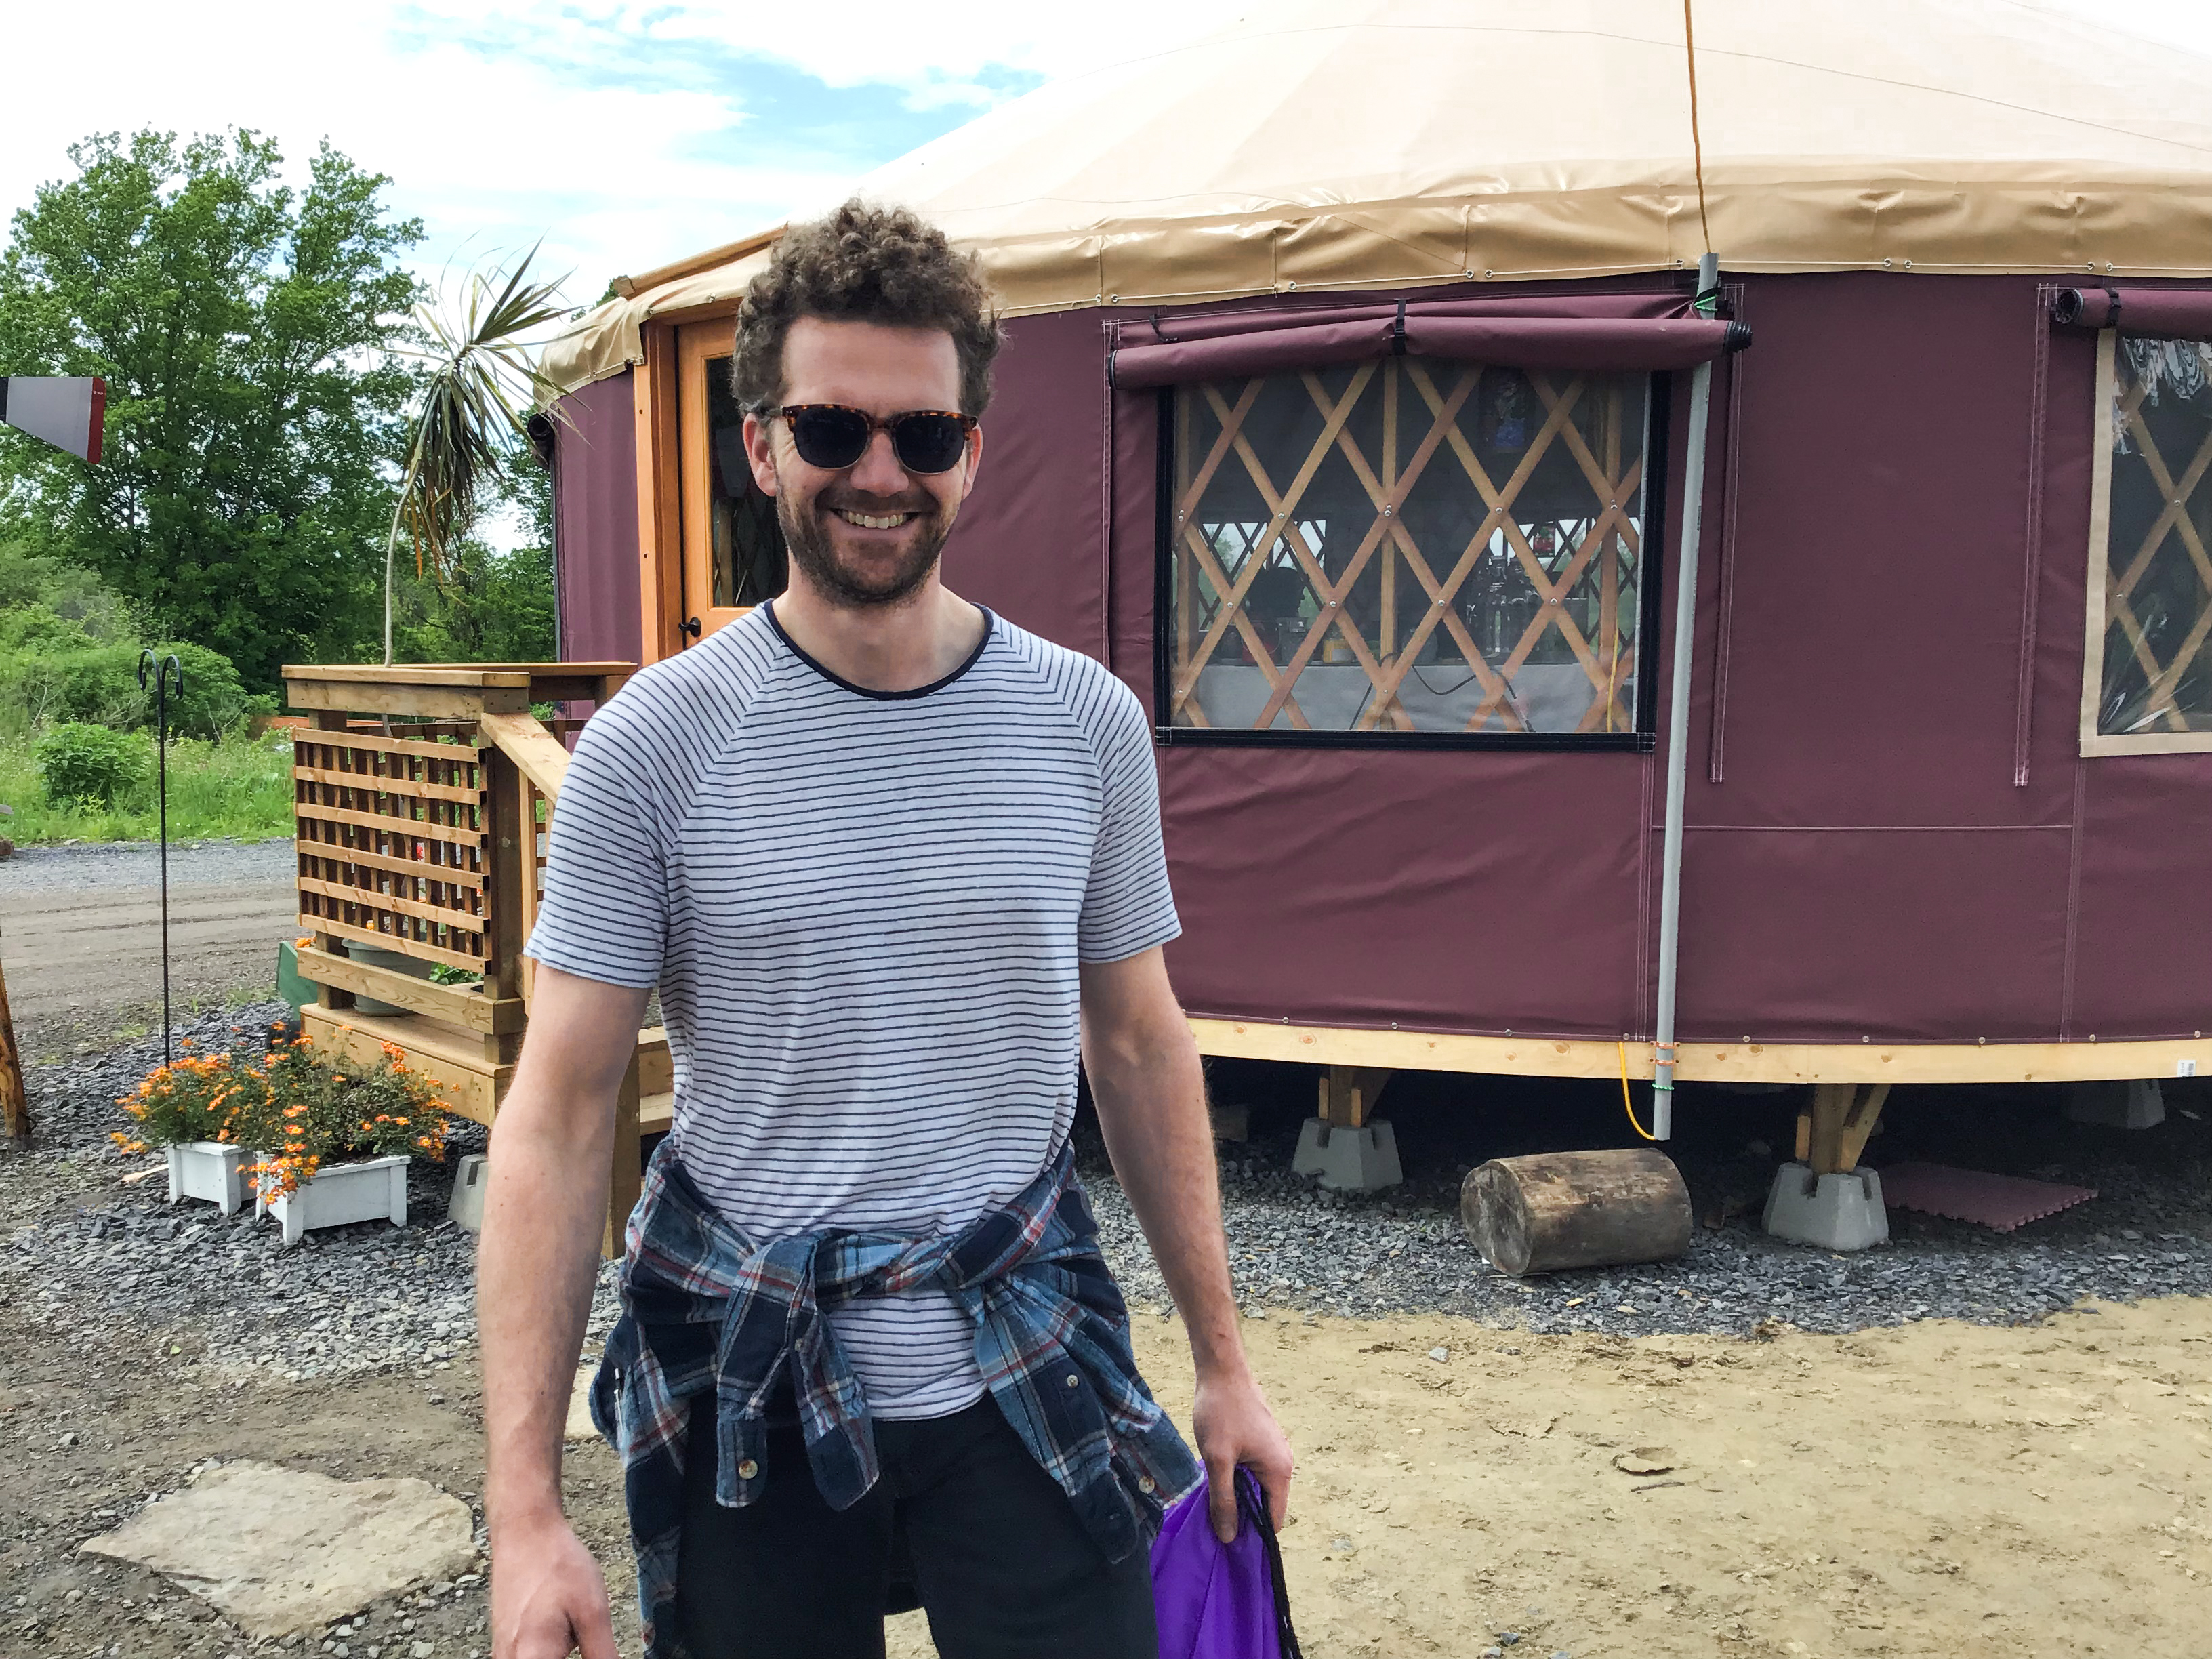 Charles de Lannoy outside a yurt.